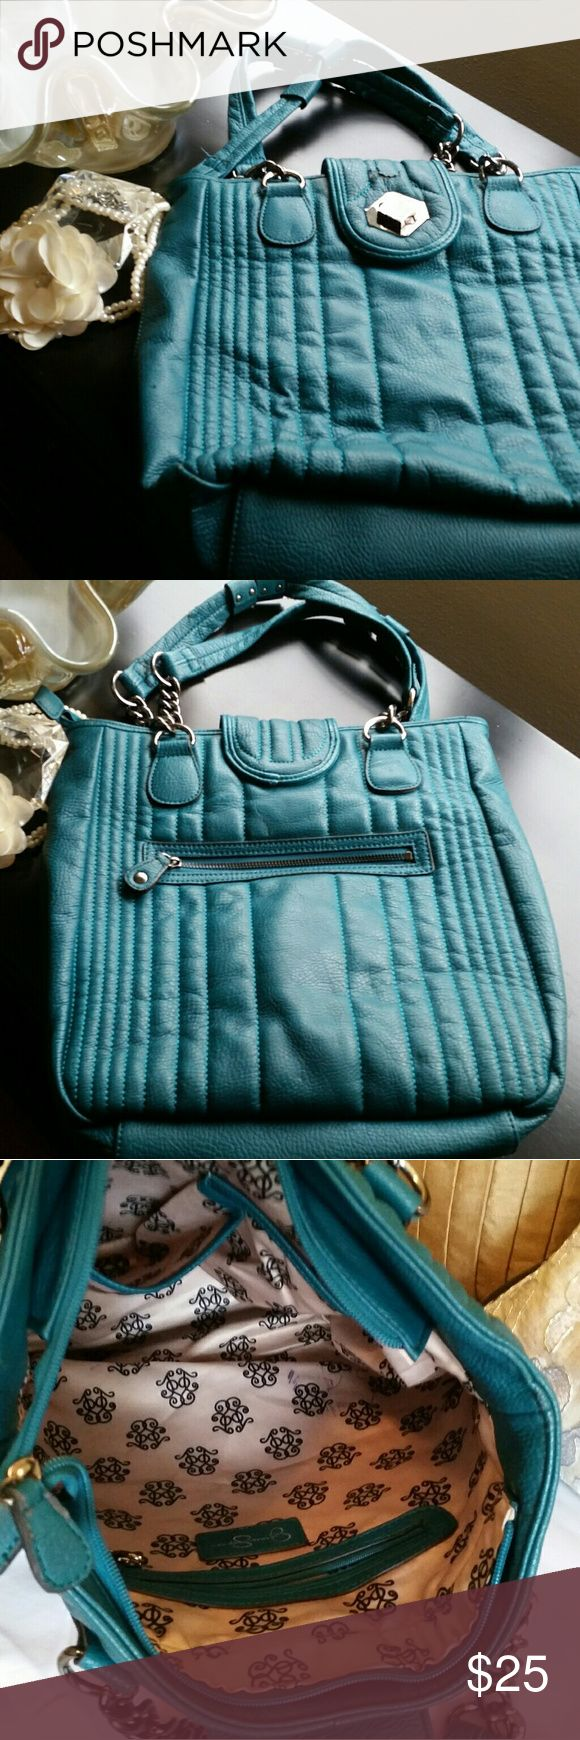 "Large Teal Jessica Simpson Tote Large Jessica Simpson tote bag! Beautiful teal color! Pre-loved do there is wear around the straps and the closing buckle area (pics 4, 5, & 6) and small interior wear (pic 3). Overall still in decent condition. Approximately 12"" long, 13"" high & 4.5"" wide with about 10"" strap height. Jessica Simpson Bags Totes"